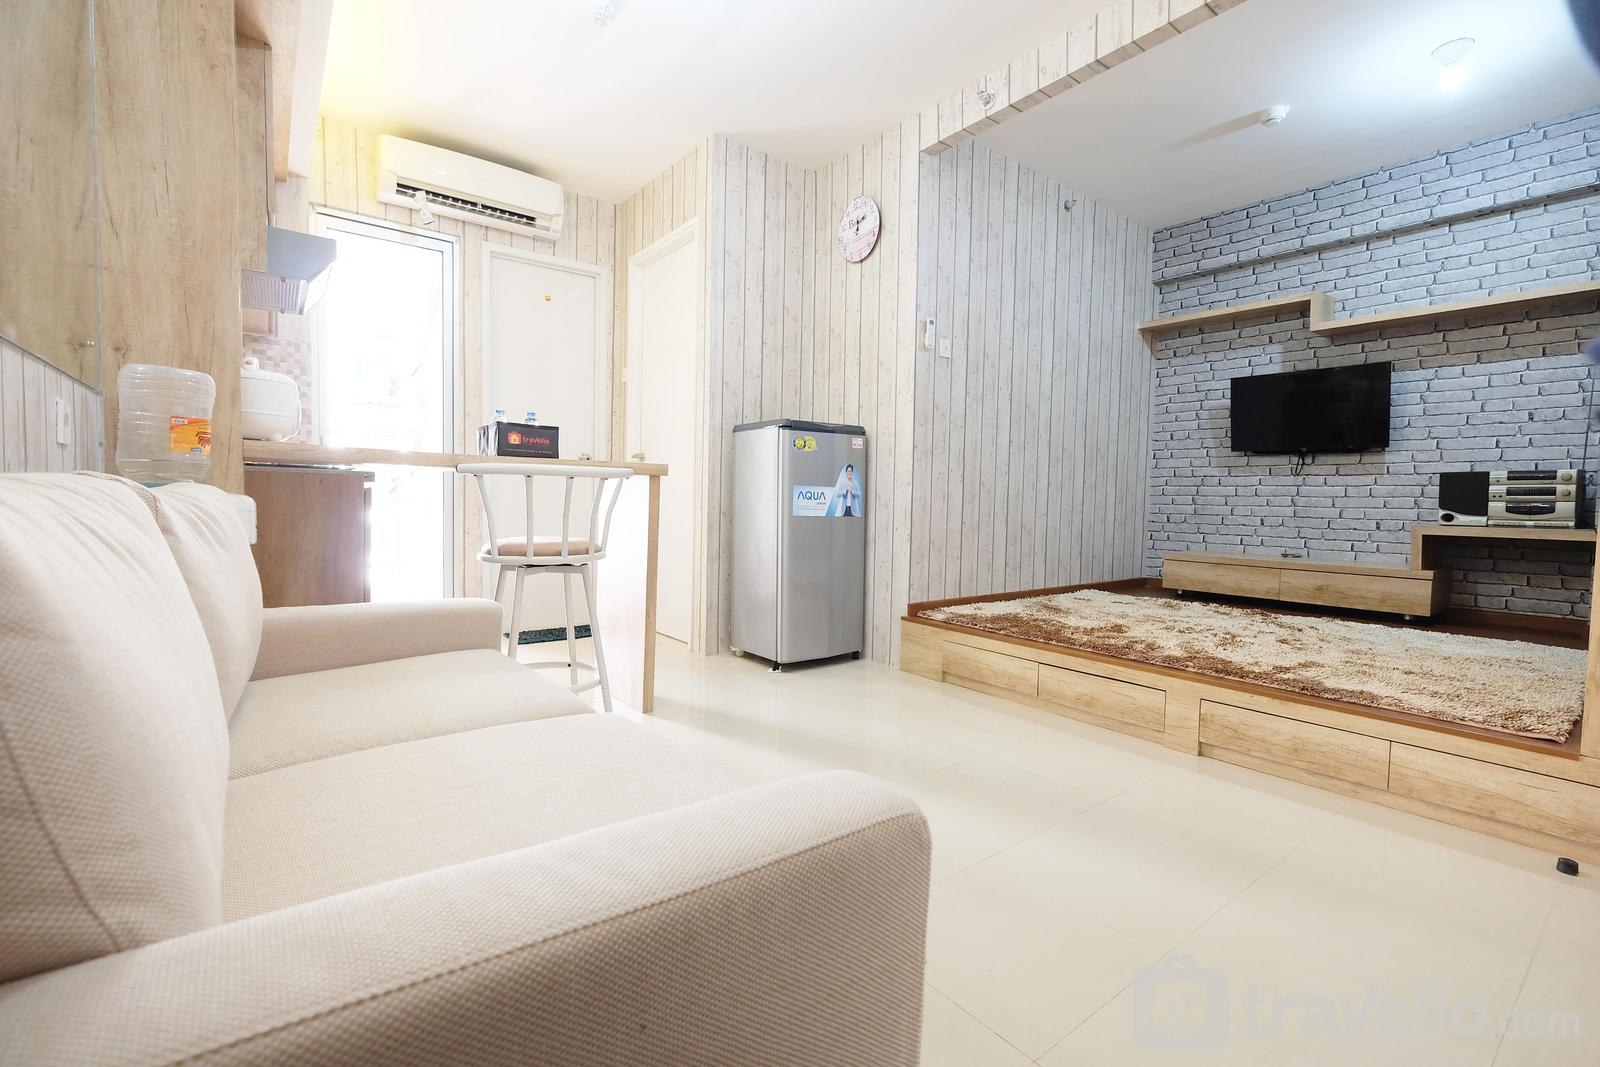 Bassura City Cipinang - Spacious and Cozy 1BR Bassura City Apartment By Travelio